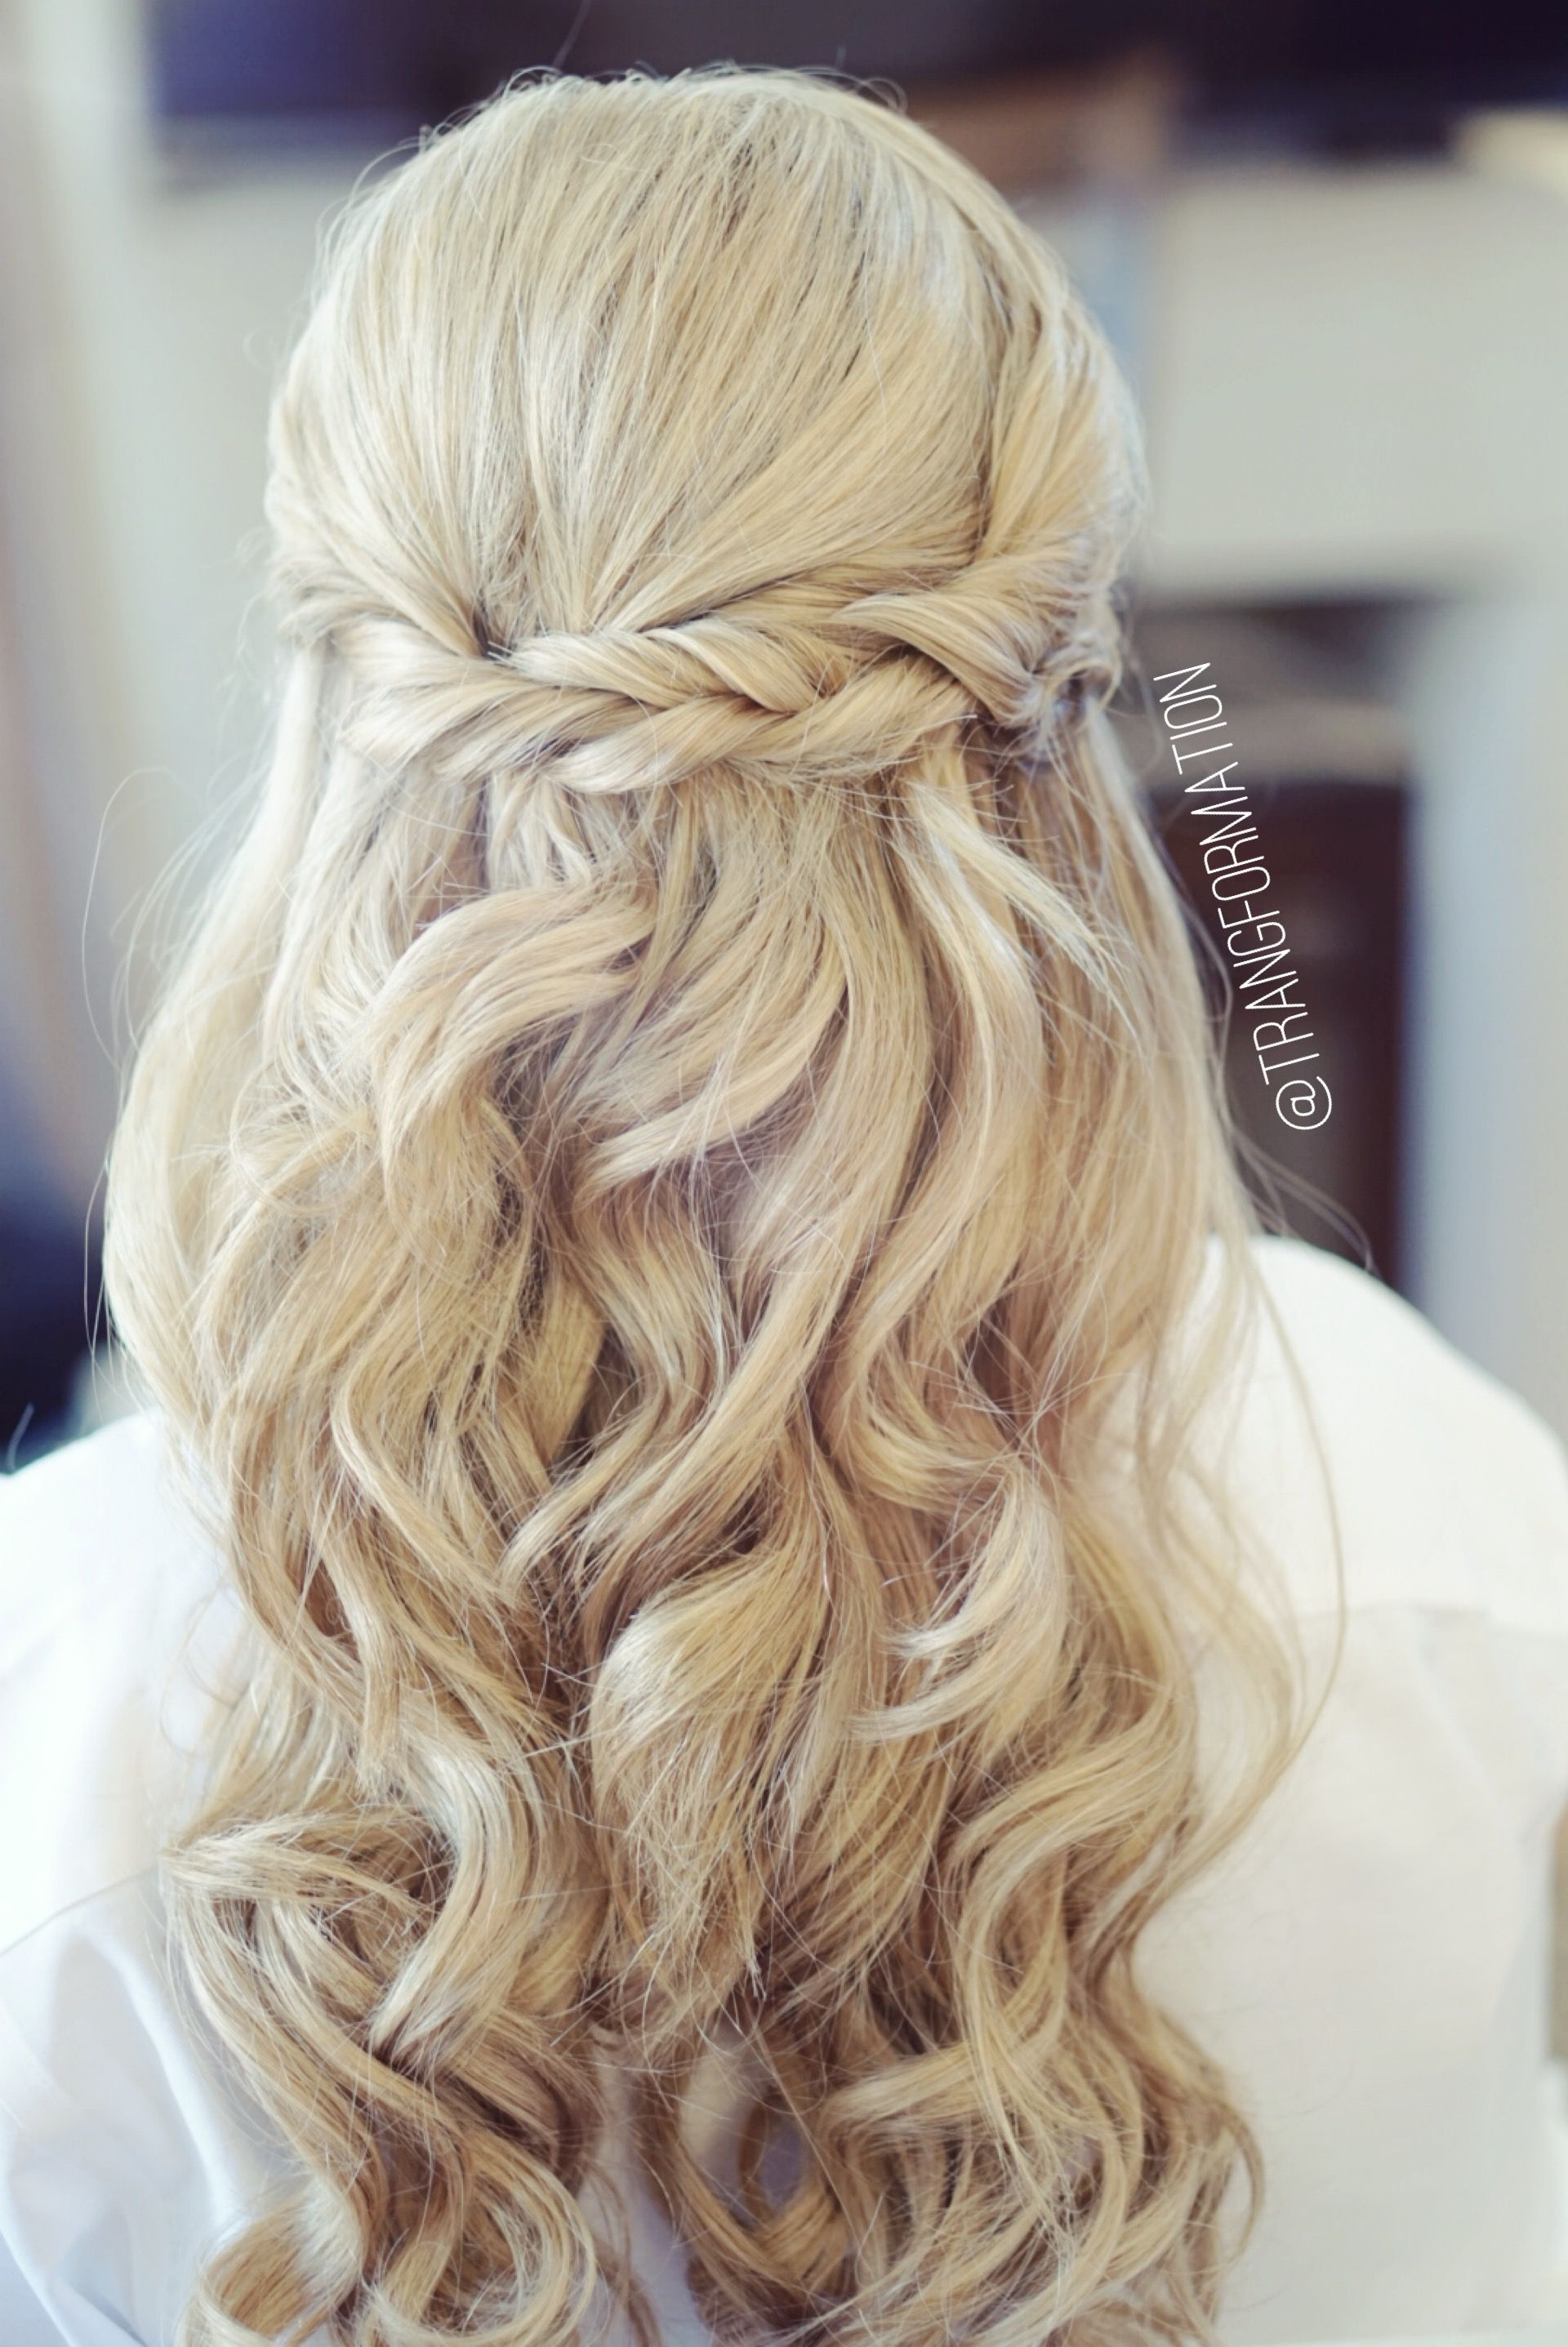 Bridesmaid Hairstyles Half Up Half Down Brilliant Half Up Half Down Bridal Hair Wedding Hair Bride Wedding